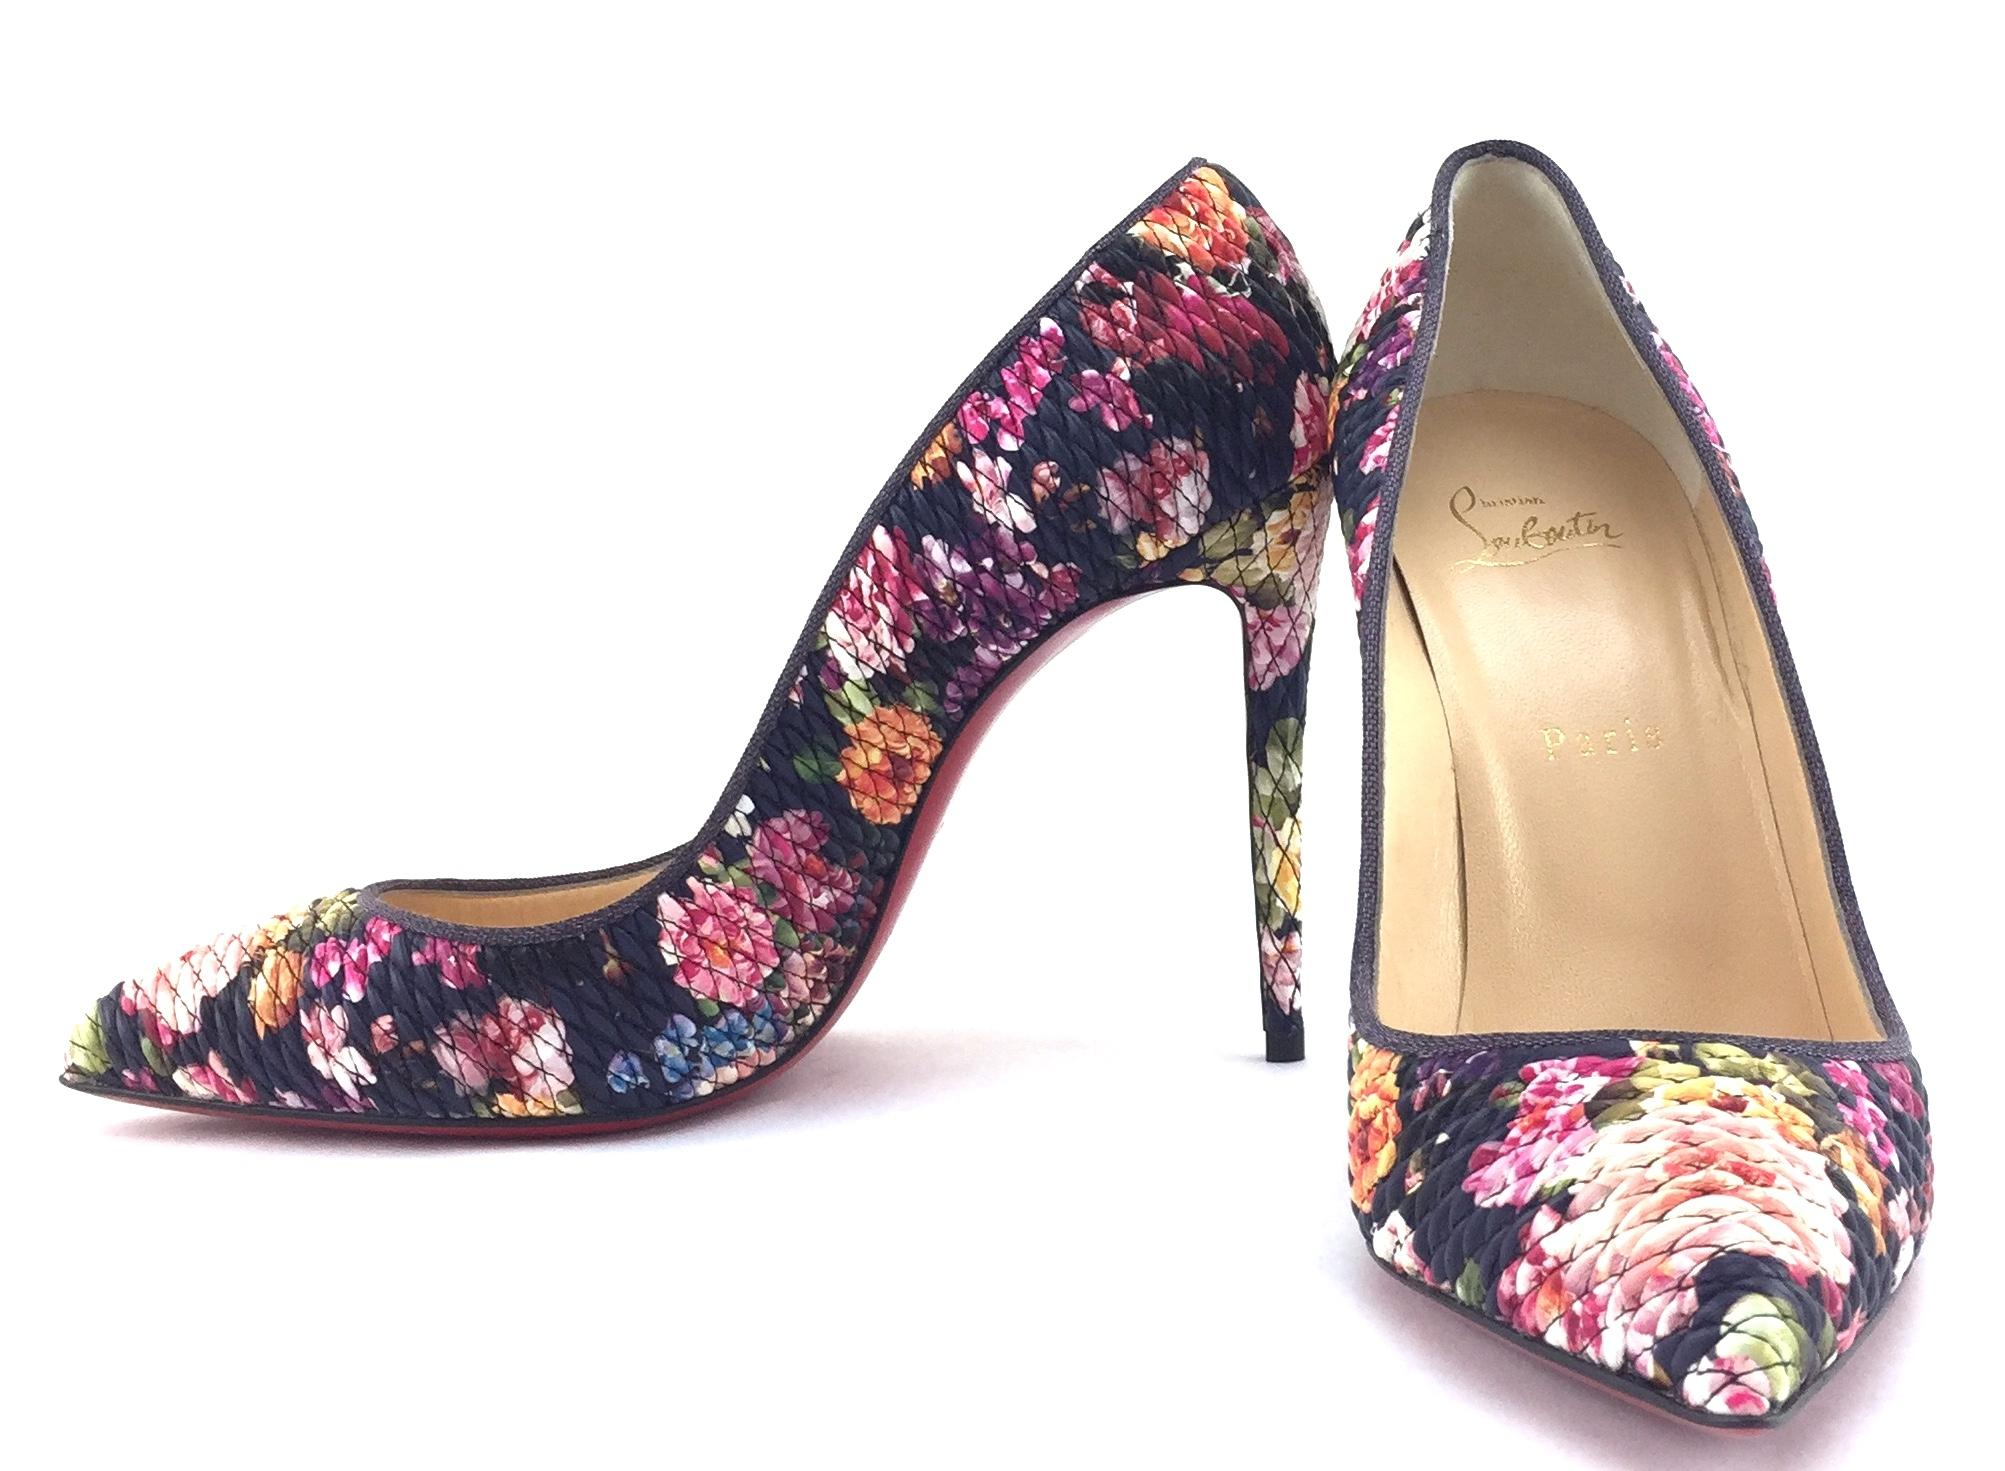 Christian Louboutin Multicolor Black Floral #21045 Quilted Leather Pigalle Follies Pumps Size EU 39.5 (Approx. US 9.5) Regular (M, B)